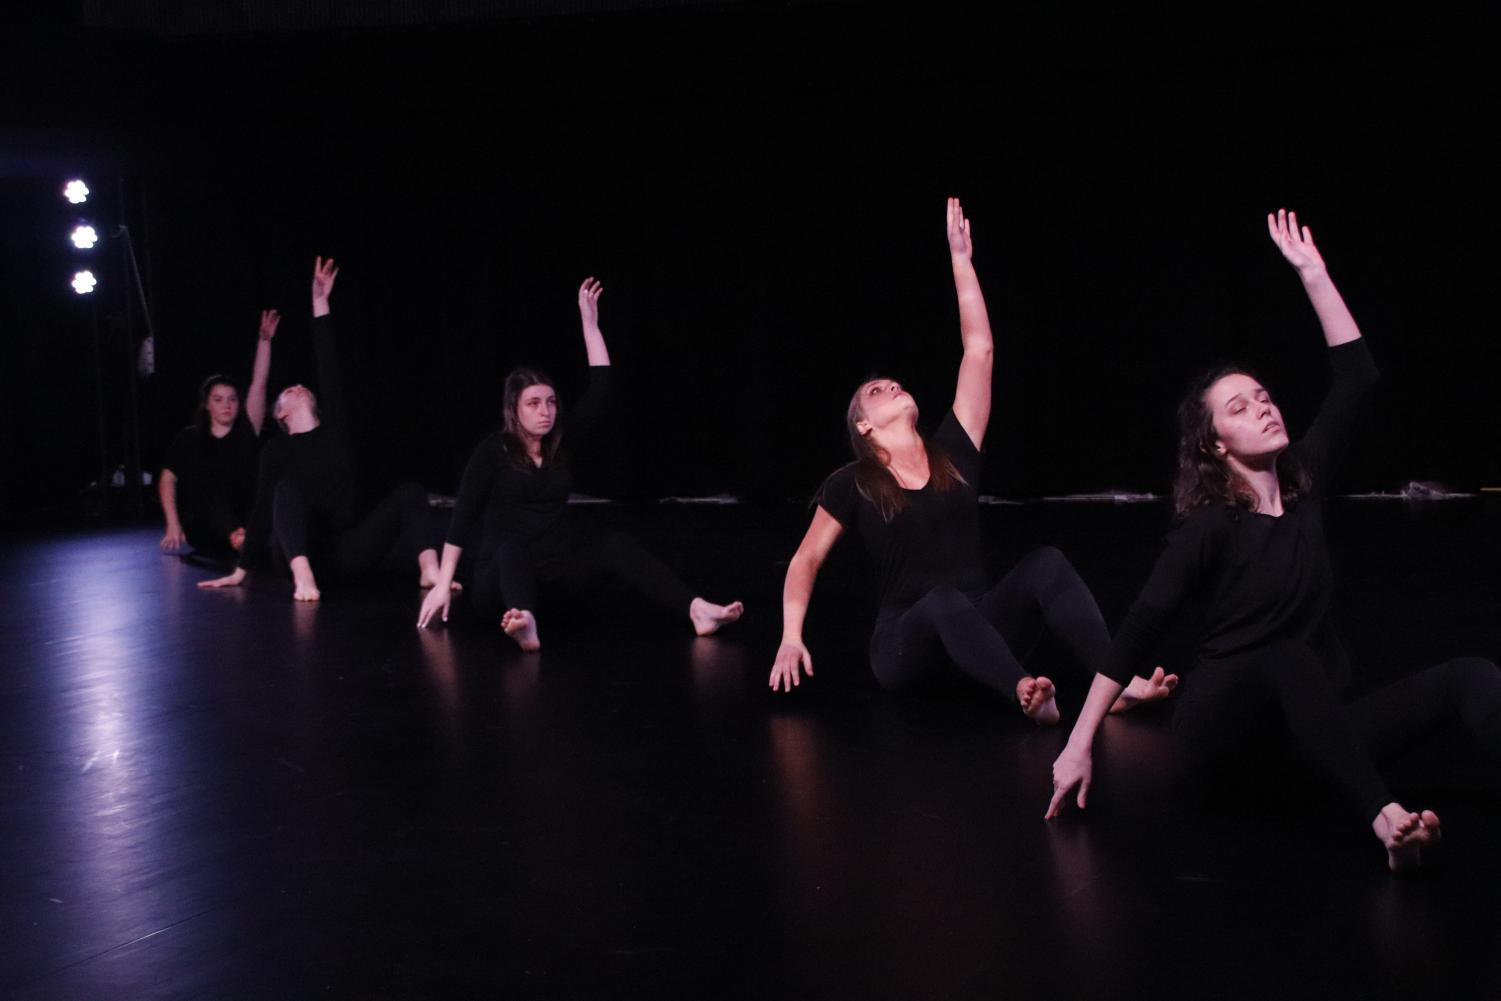 The university's Contemporary Dance Program presented the Emerging Choreographers Project as the first performance held in the newly renovated KHS 153 Dance Studio Theatre. The project consisted of 15 dances choreographed and performed by students.